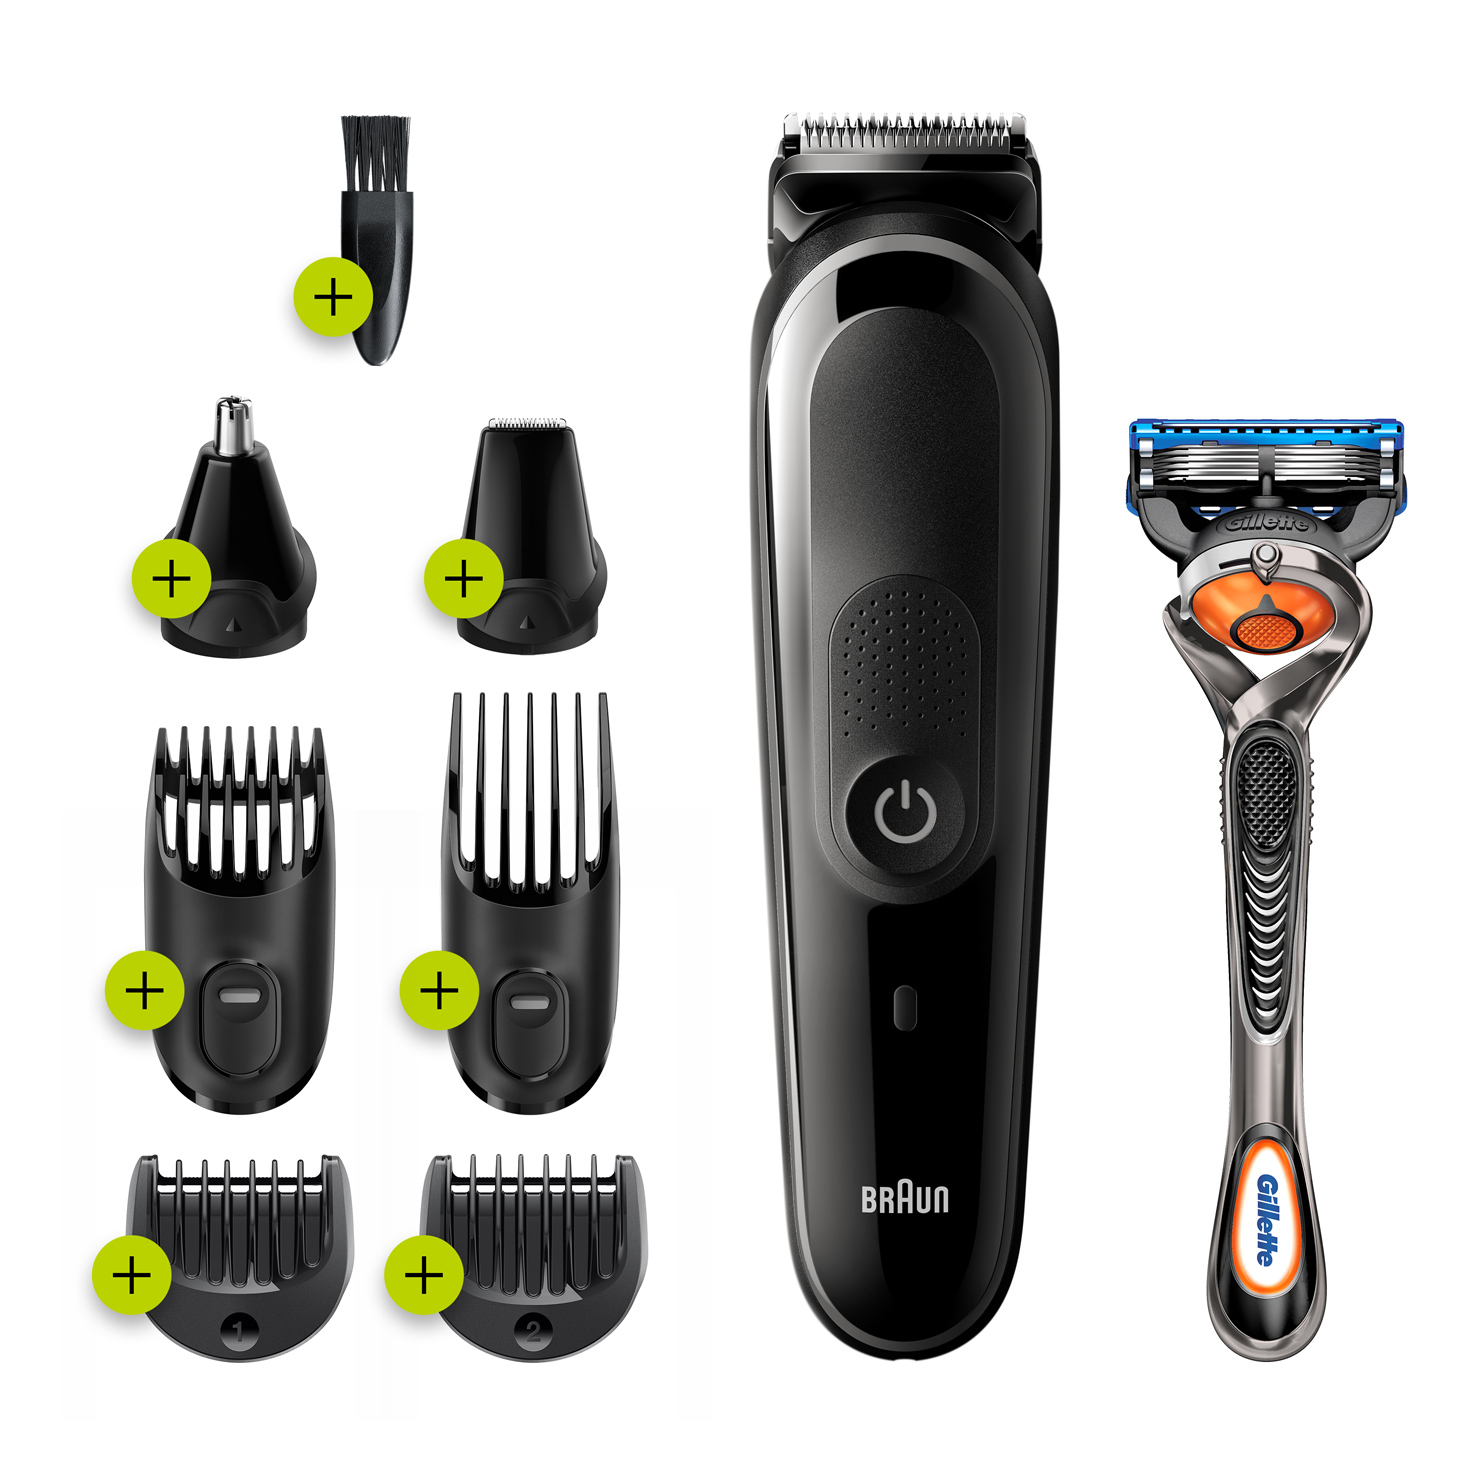 Braun All in one trimmer 5 MGK5260